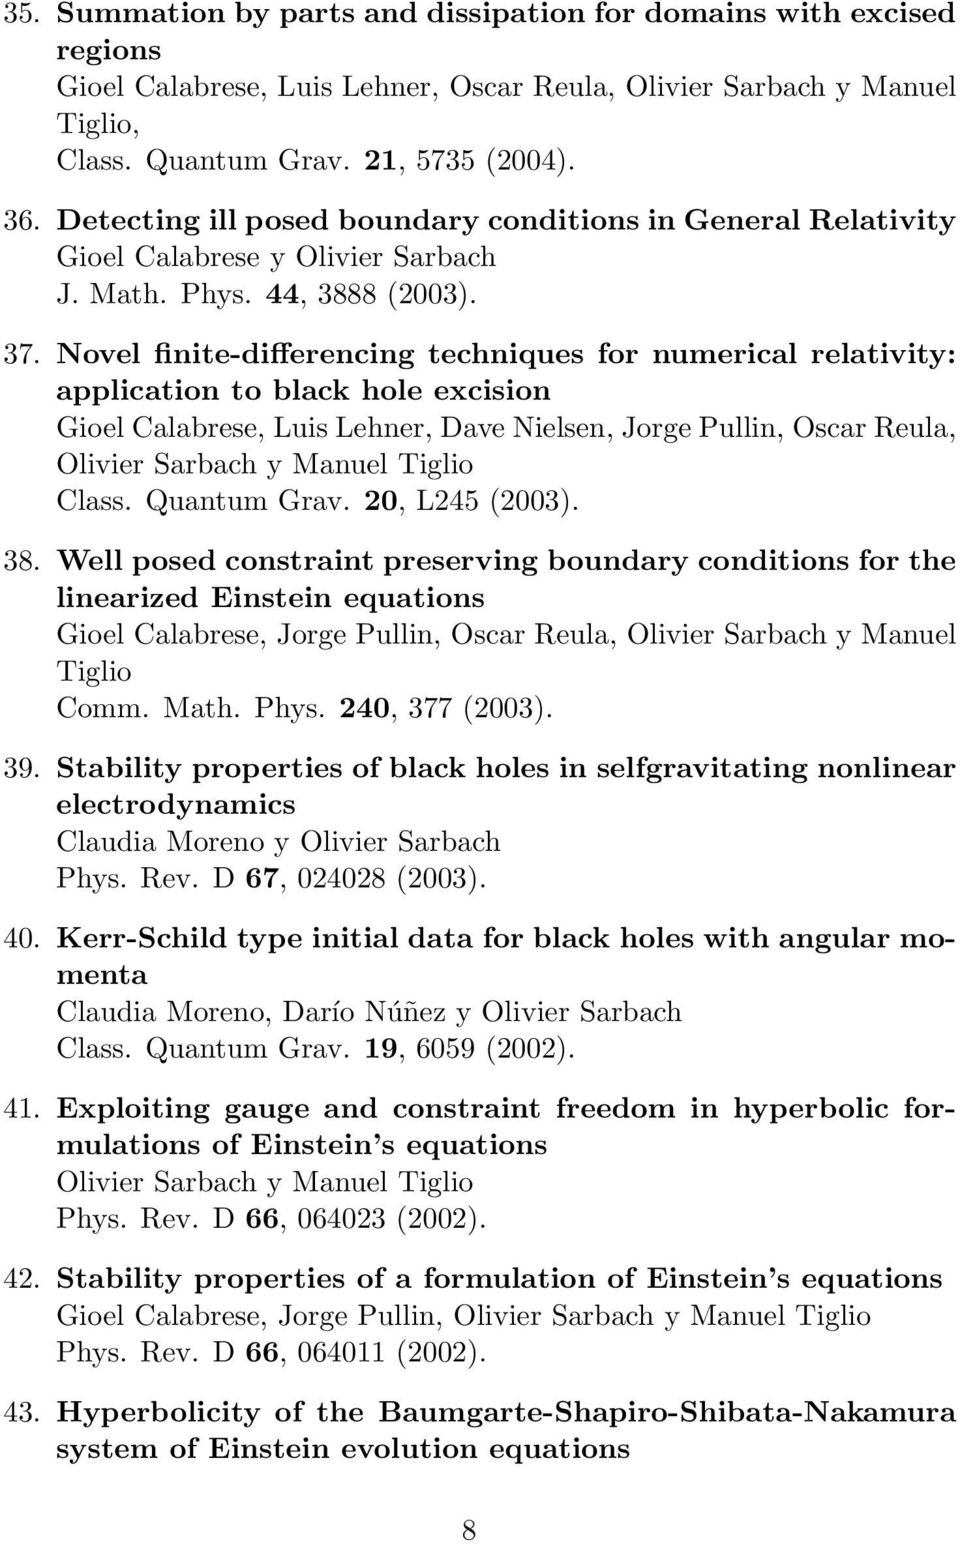 Novel finite-differencing techniques for numerical relativity: application to black hole excision Gioel Calabrese, Luis Lehner, Dave Nielsen, Jorge Pullin, Oscar Reula, Olivier Sarbach y Manuel